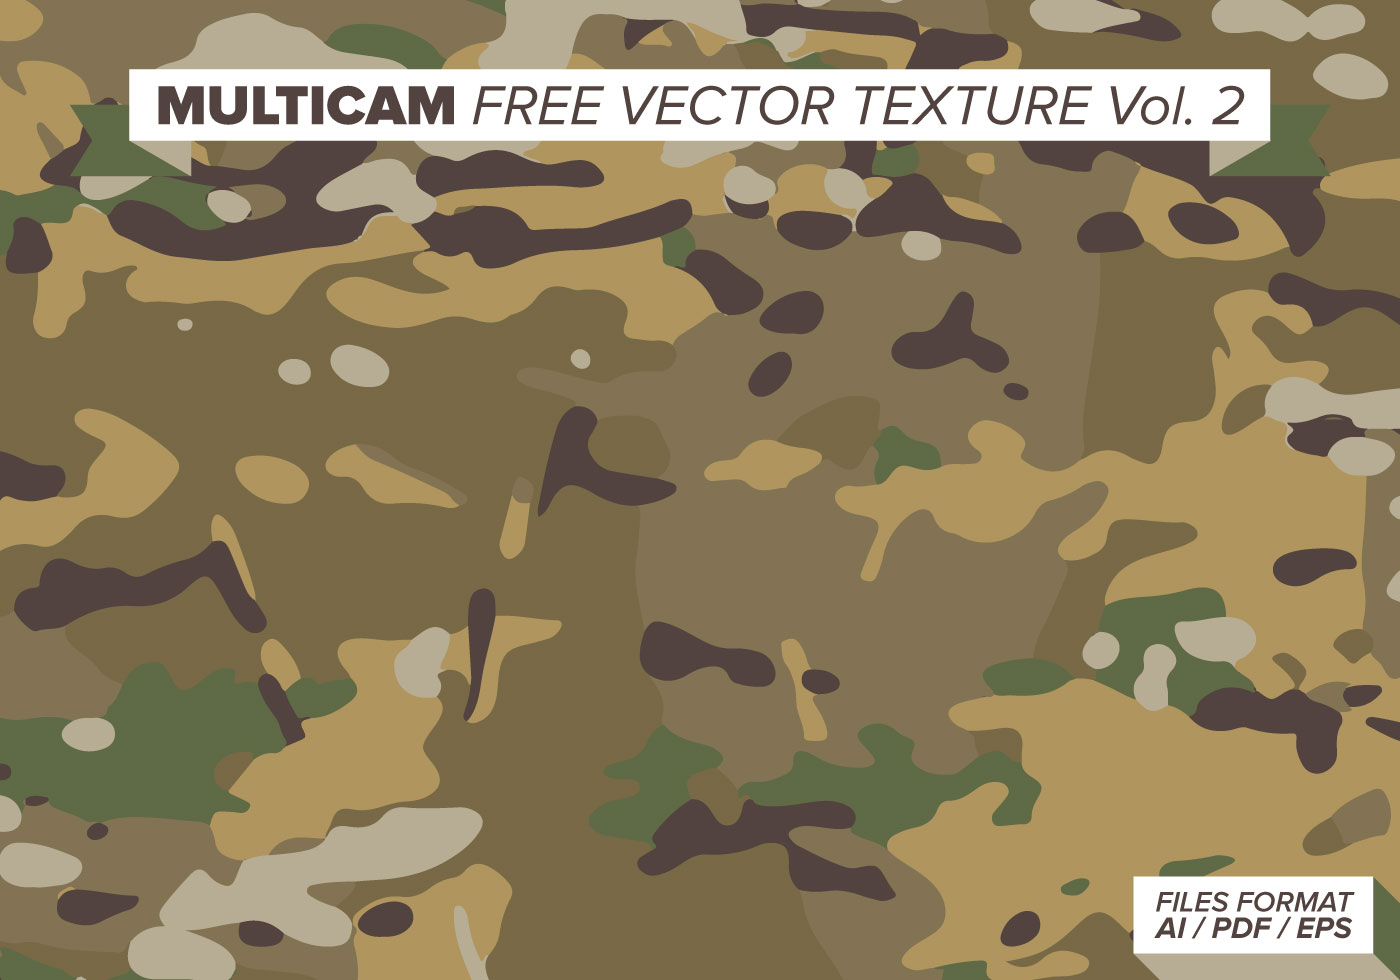 ... Texture Vol. 2 - Download Free Vector Art, Stock Graphics & Images